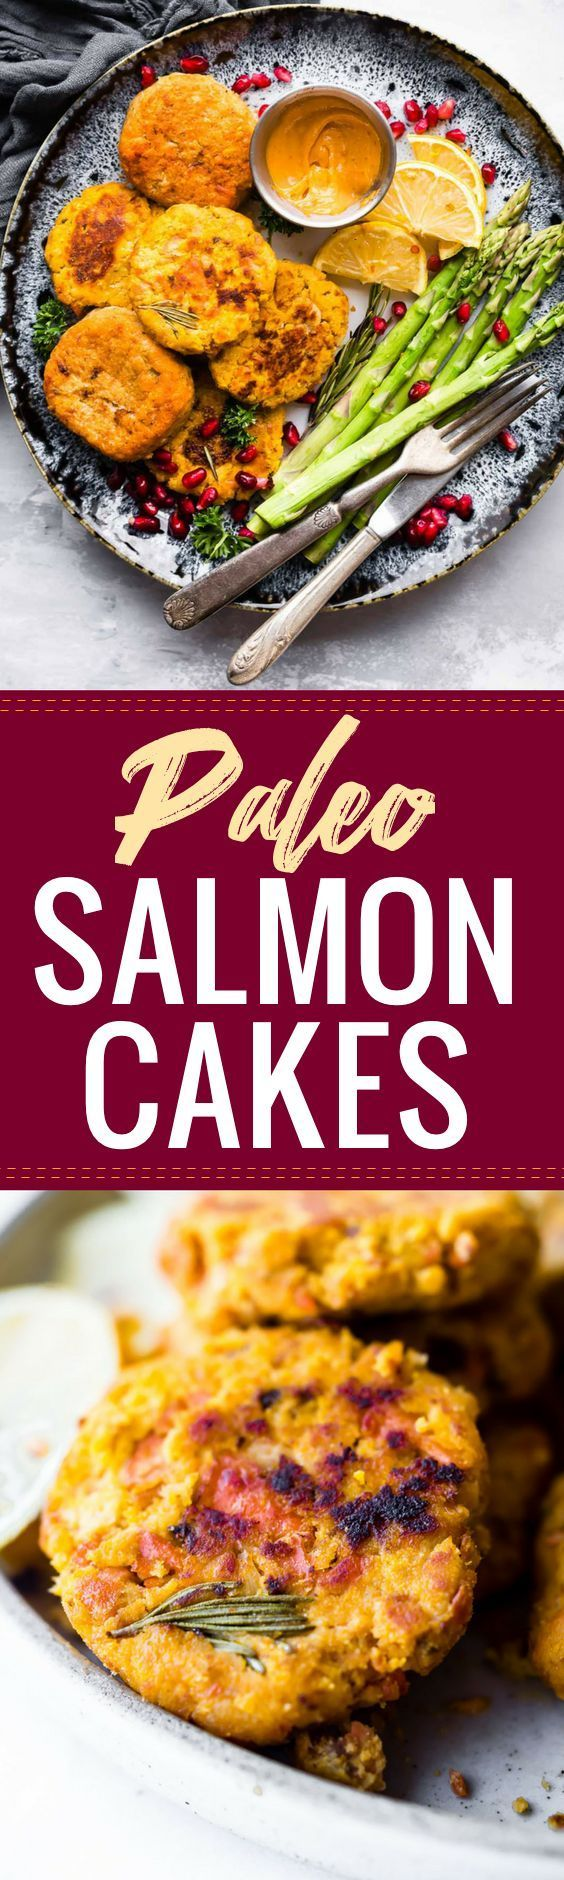 Paleo Salmon Cakes are quick,easy to make, delicious meal or appetizer!These Salmon cakes are literally veggie packed and protein packed, not to mention whole30 friendly. | Posted By: DebbieNet.com